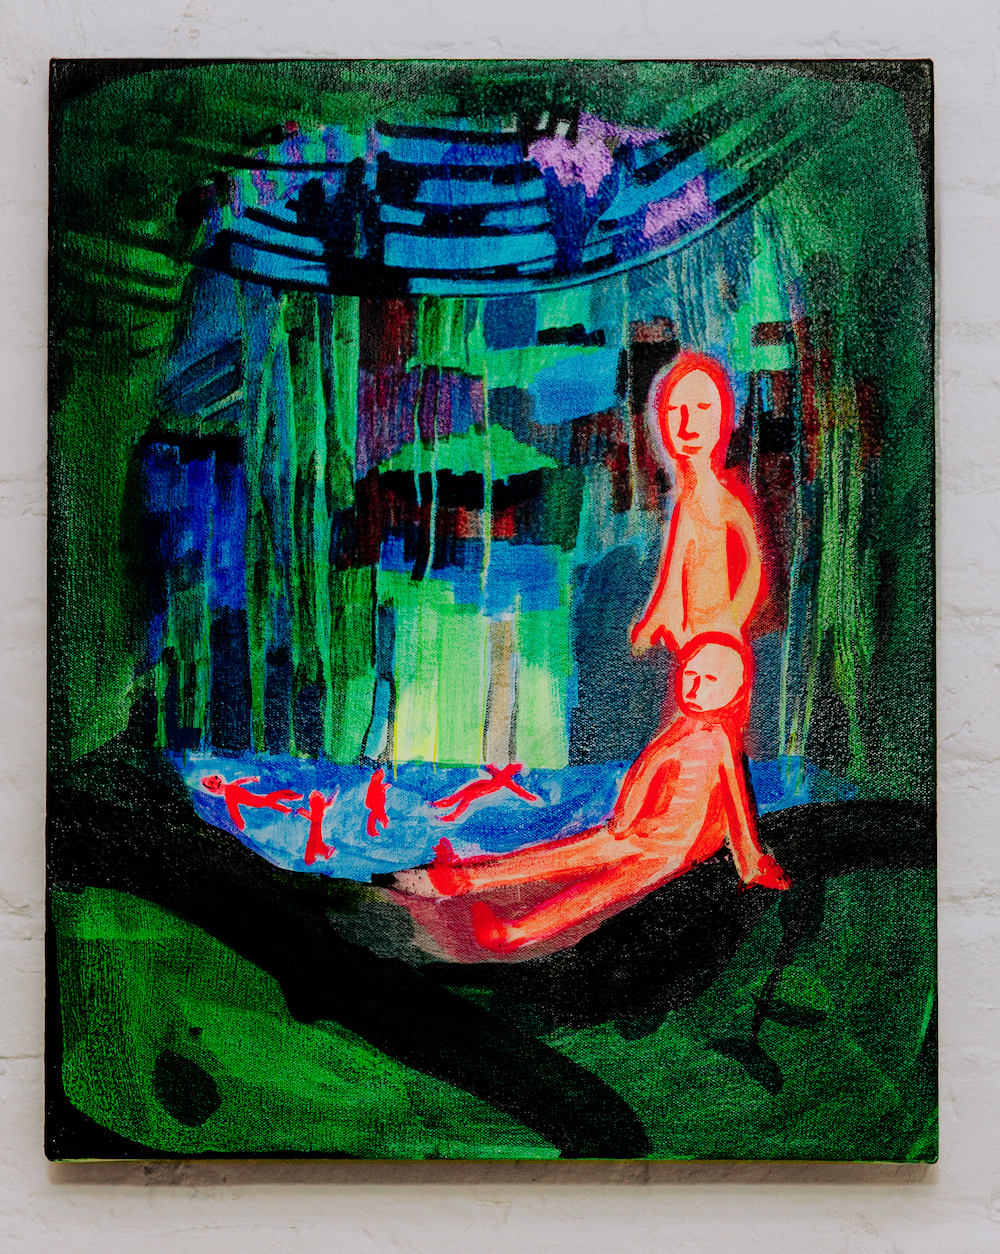 A medium sized painting of two figures in flourescent pink inside of dark green cenote, a natural pit of underground water.